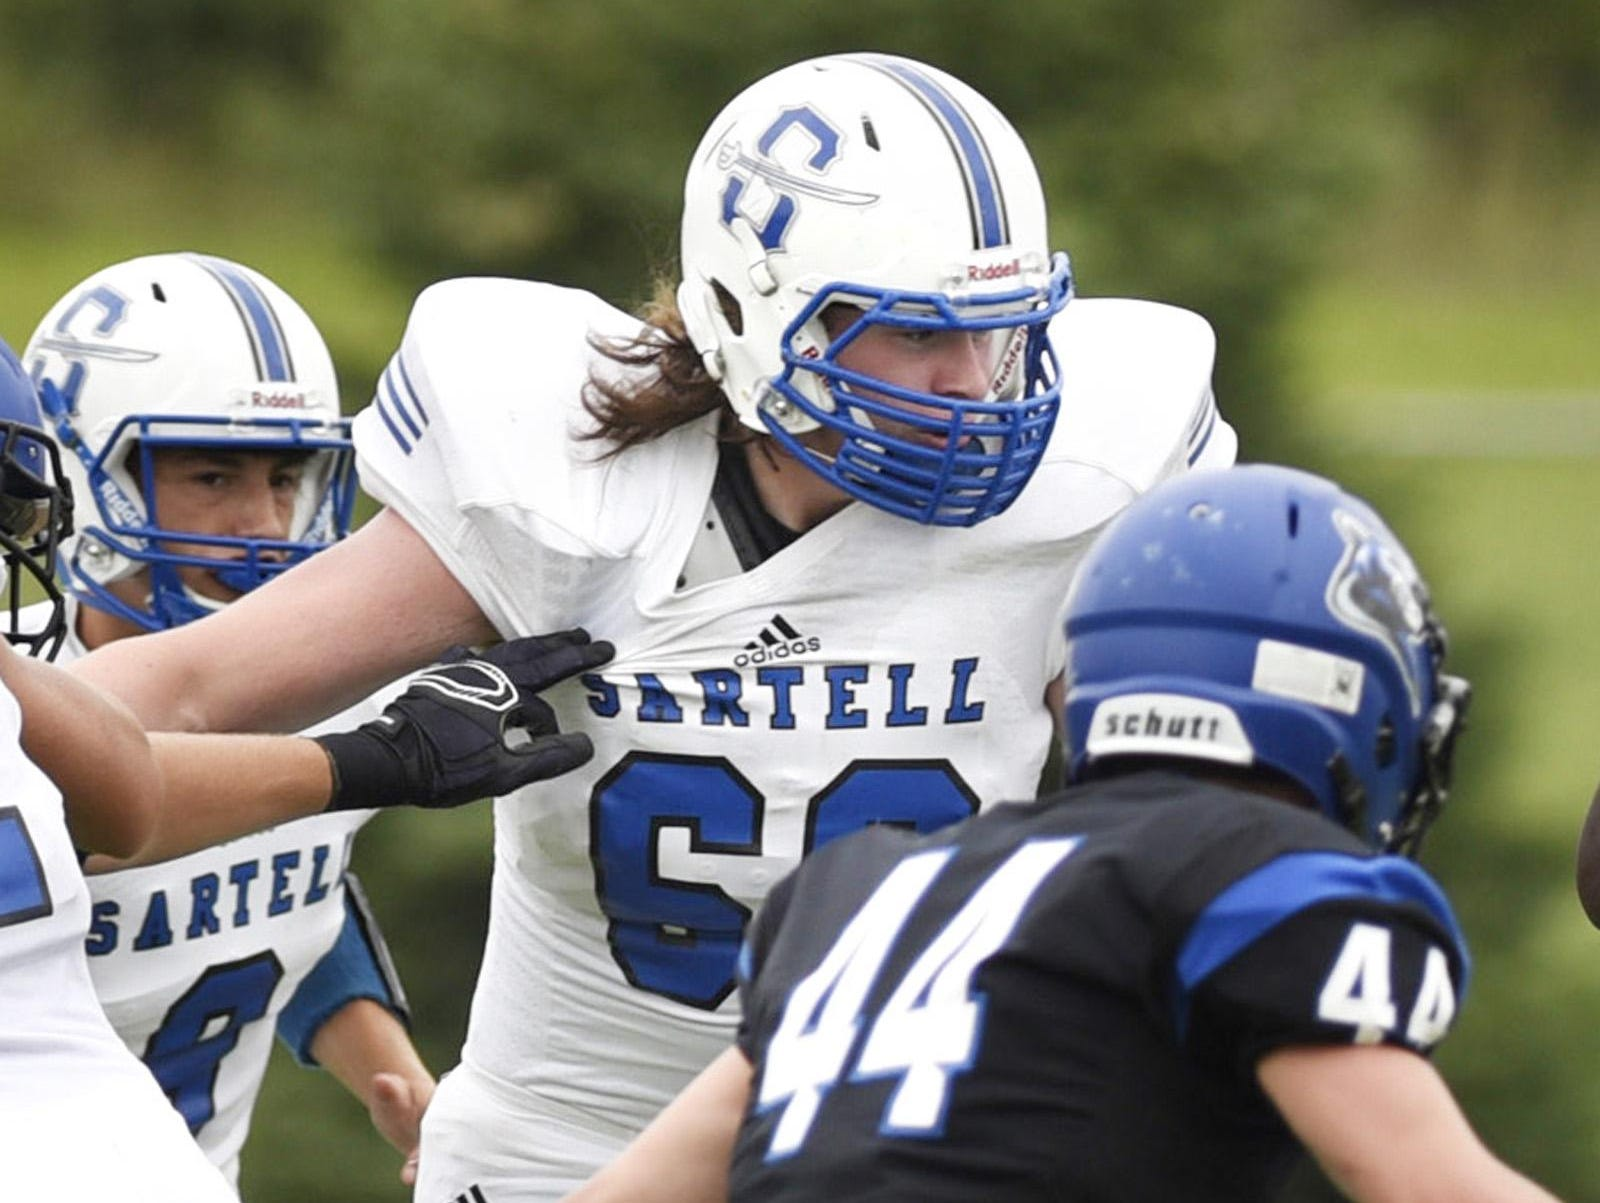 Sartell offensive lineman Ben Gault blocks for a runner against Rogers during the first half on Aug. 12 in Rogers.